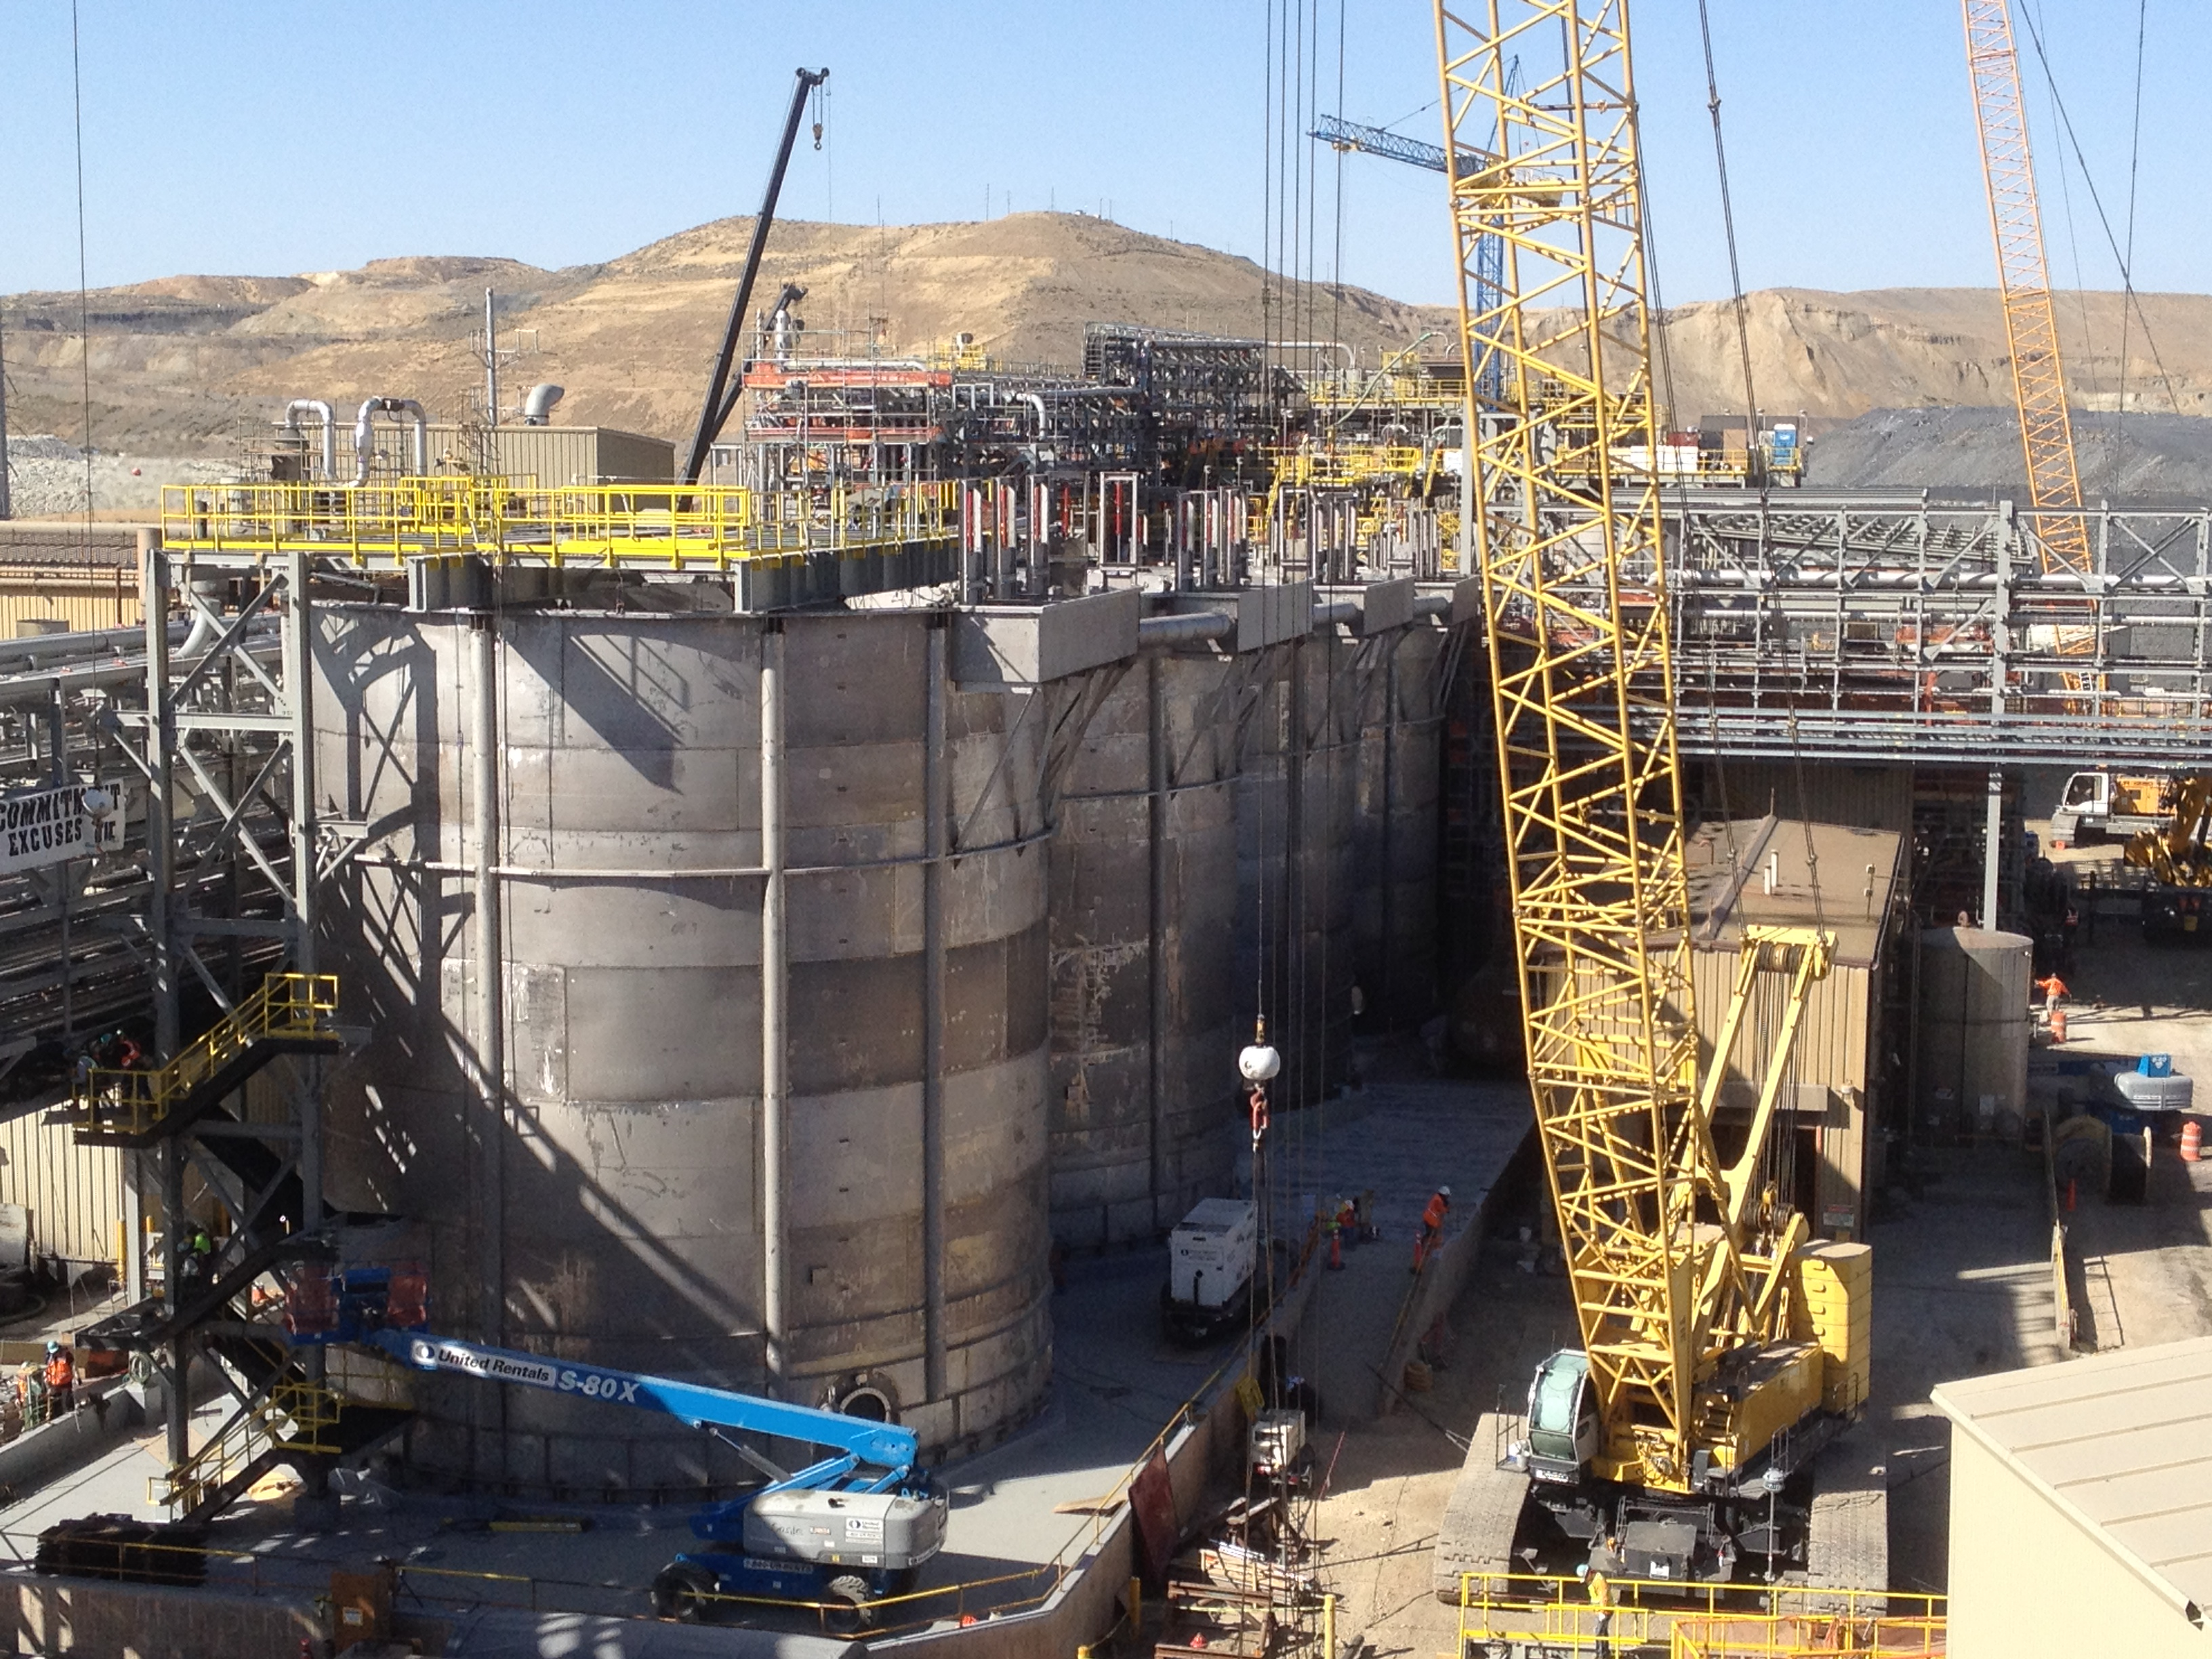 The Barrick plant including giant stainless steel tanks to run the cyanide-free process.